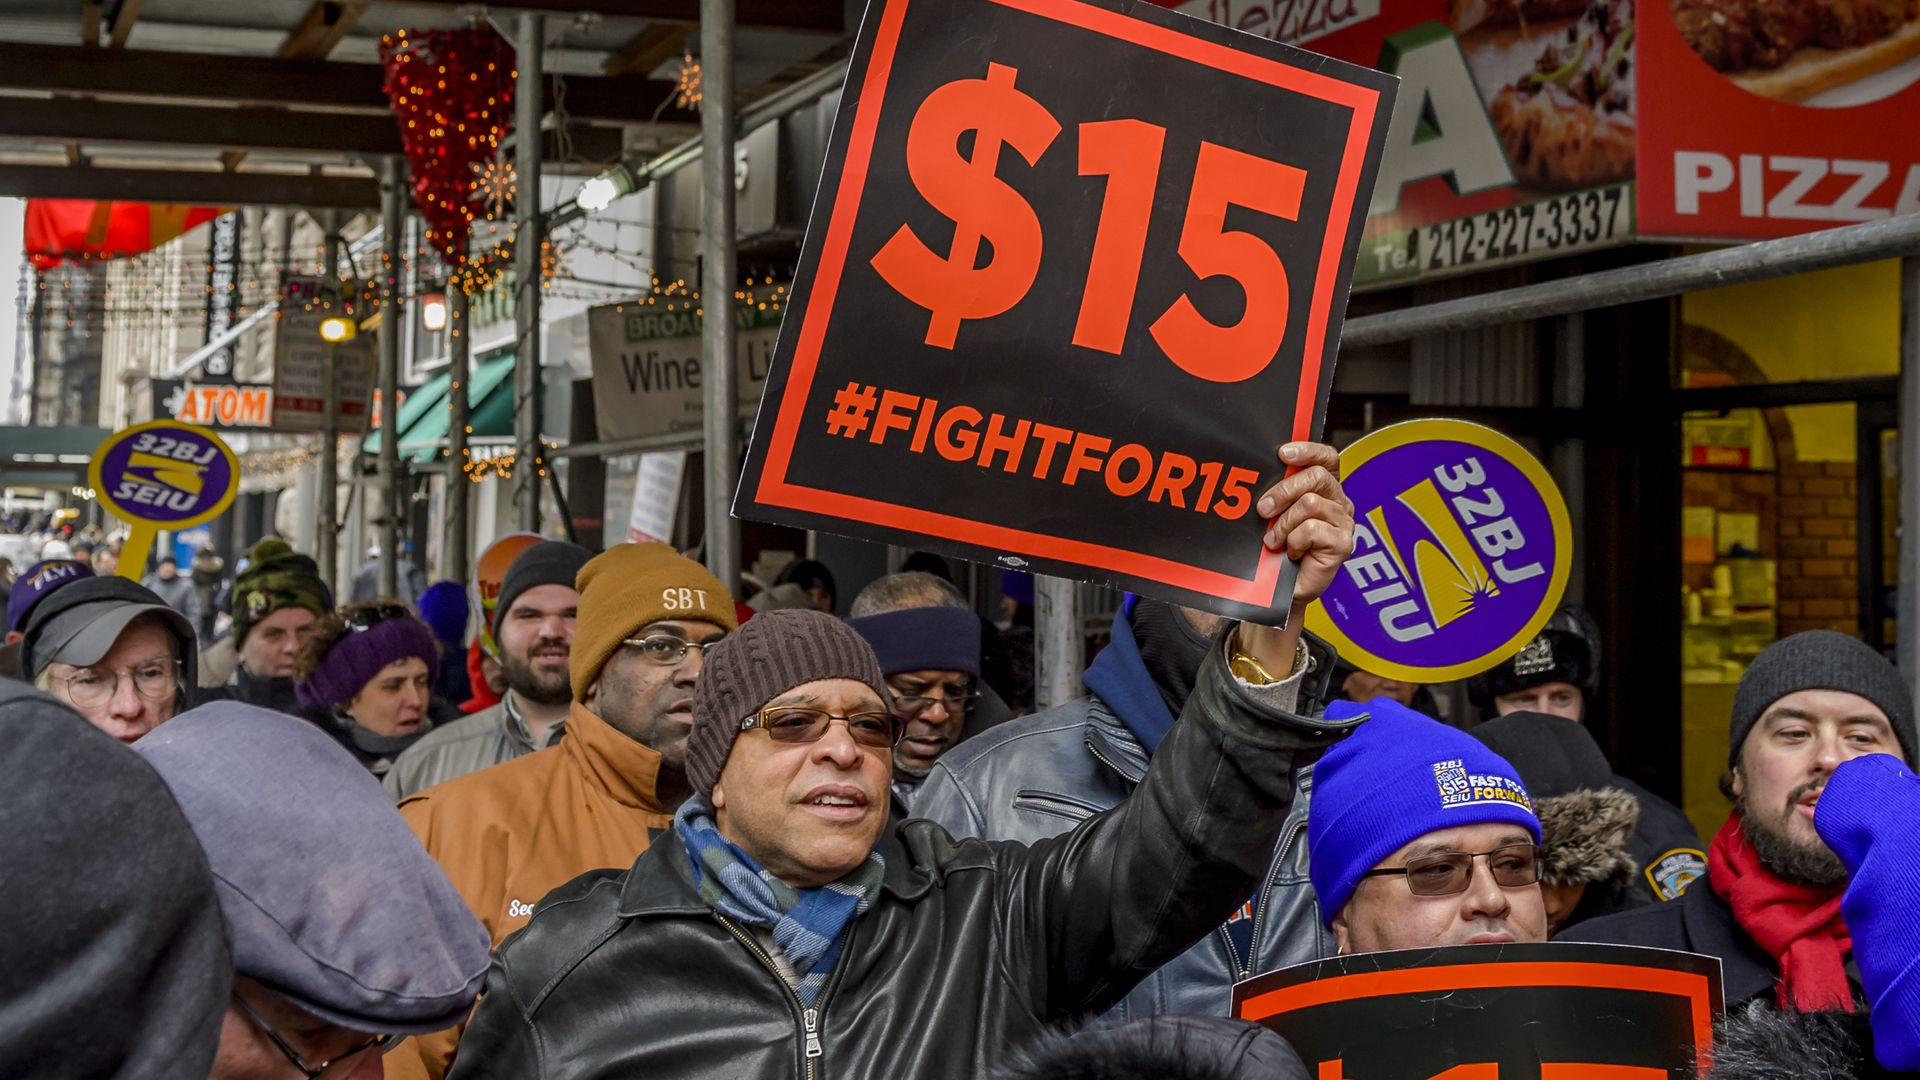 Minimum wage increases could significantly slow growth of on-demand companies